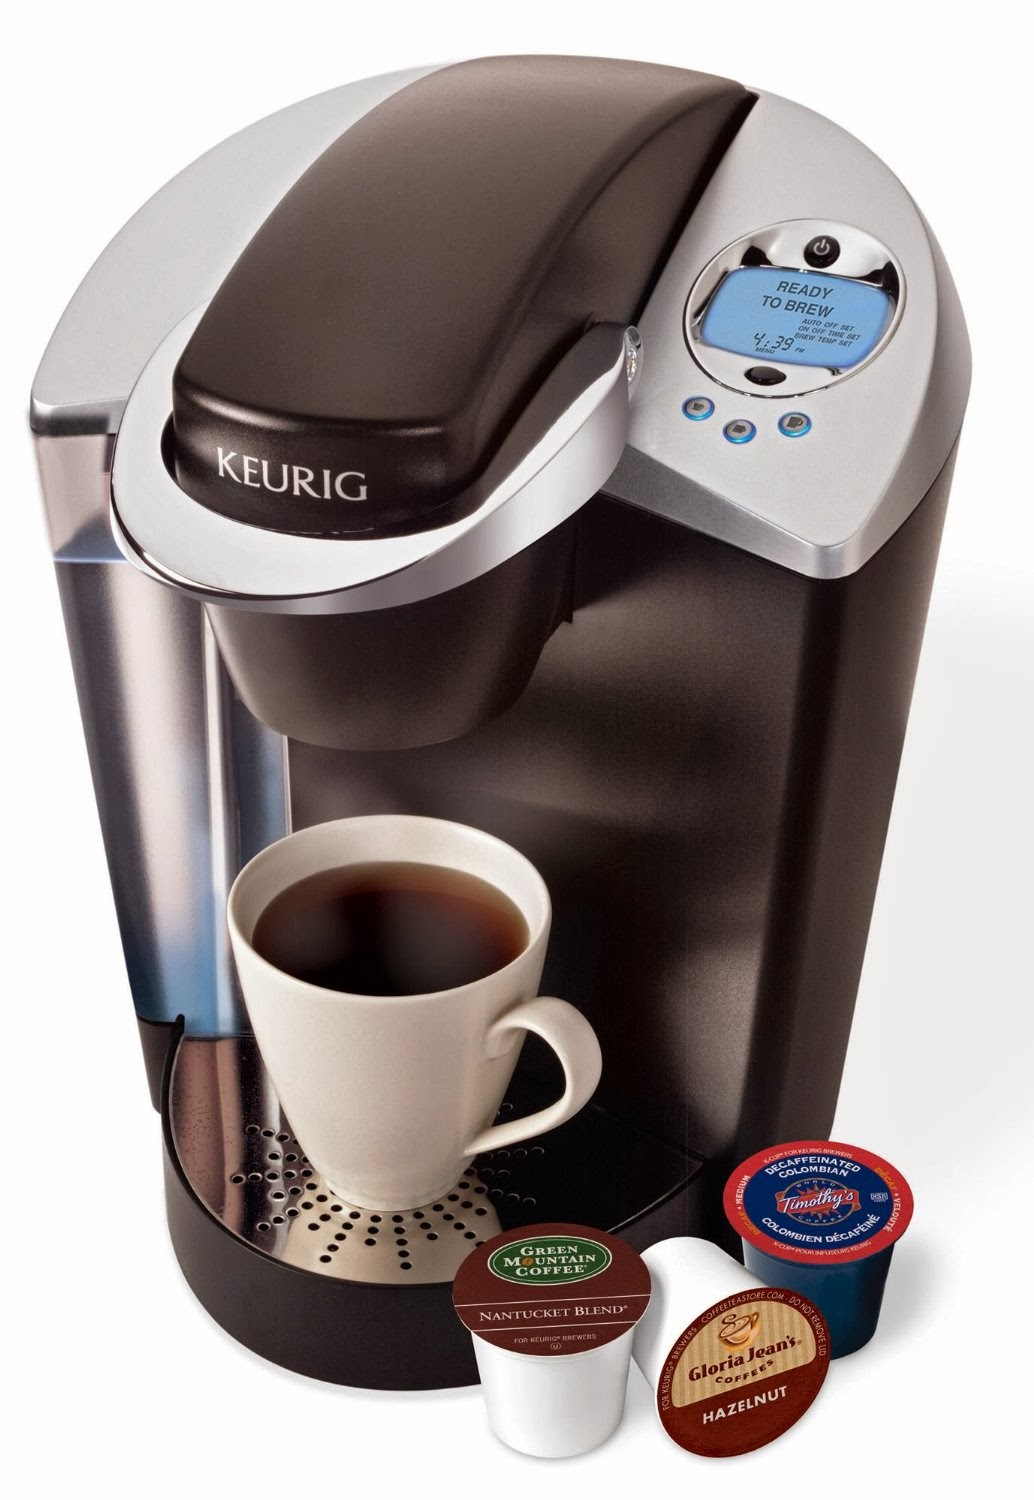 Best Coffee Maker Of 2014 : Best-Rated Single Serve Coffee Maker Machines For Office Use - Reviews 2014 A Listly List